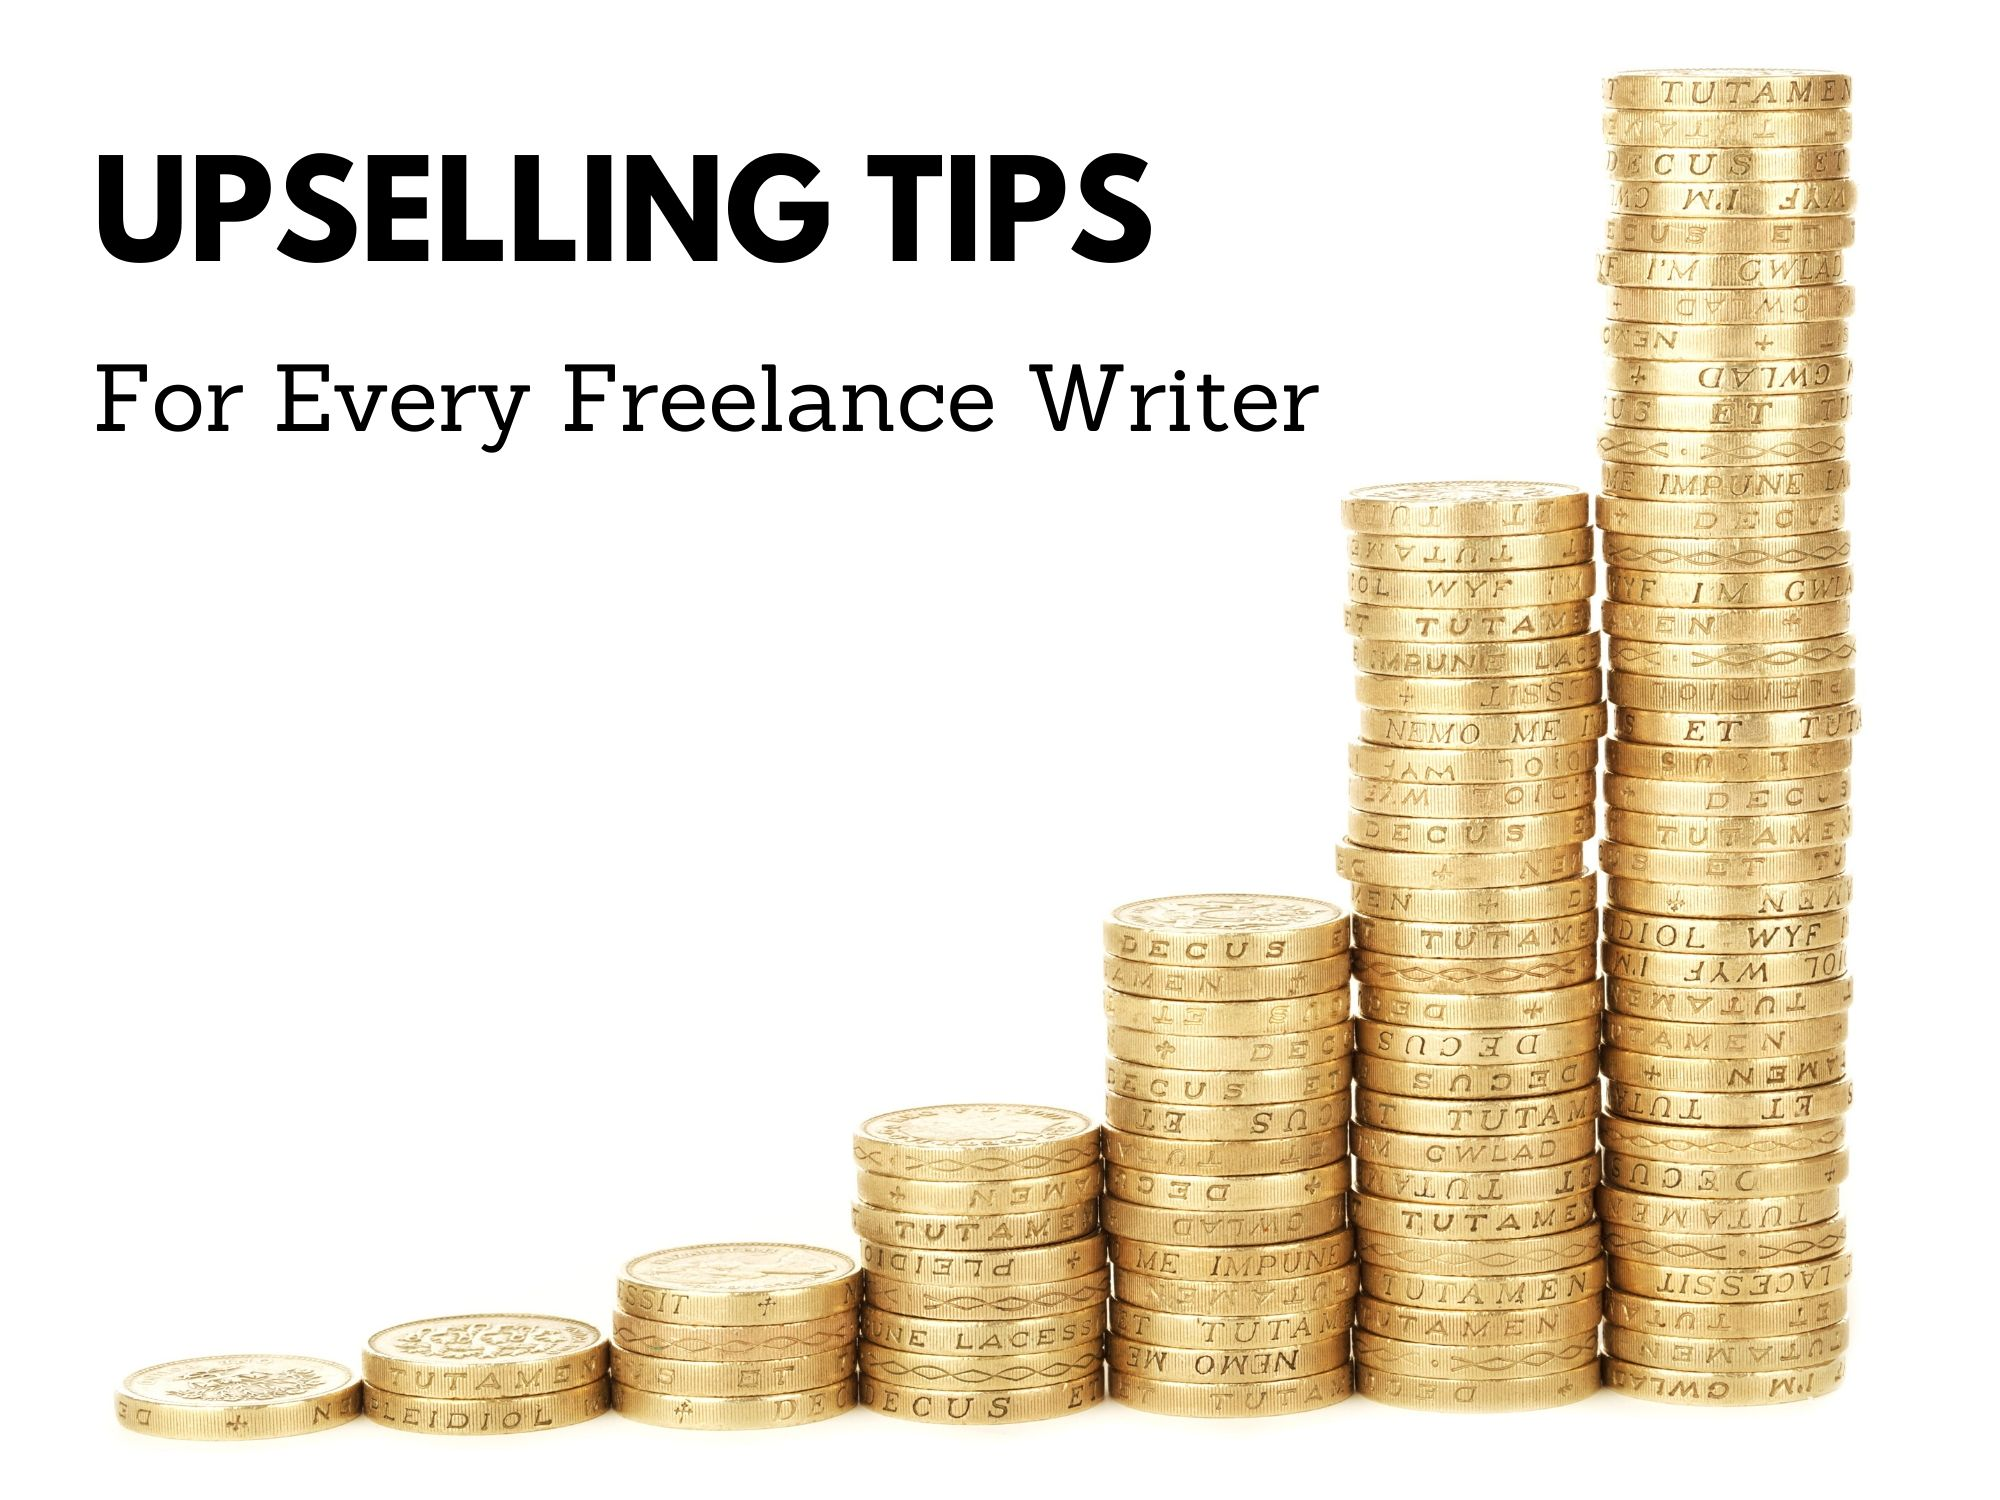 Upselling Tips for Every Freelance Writer